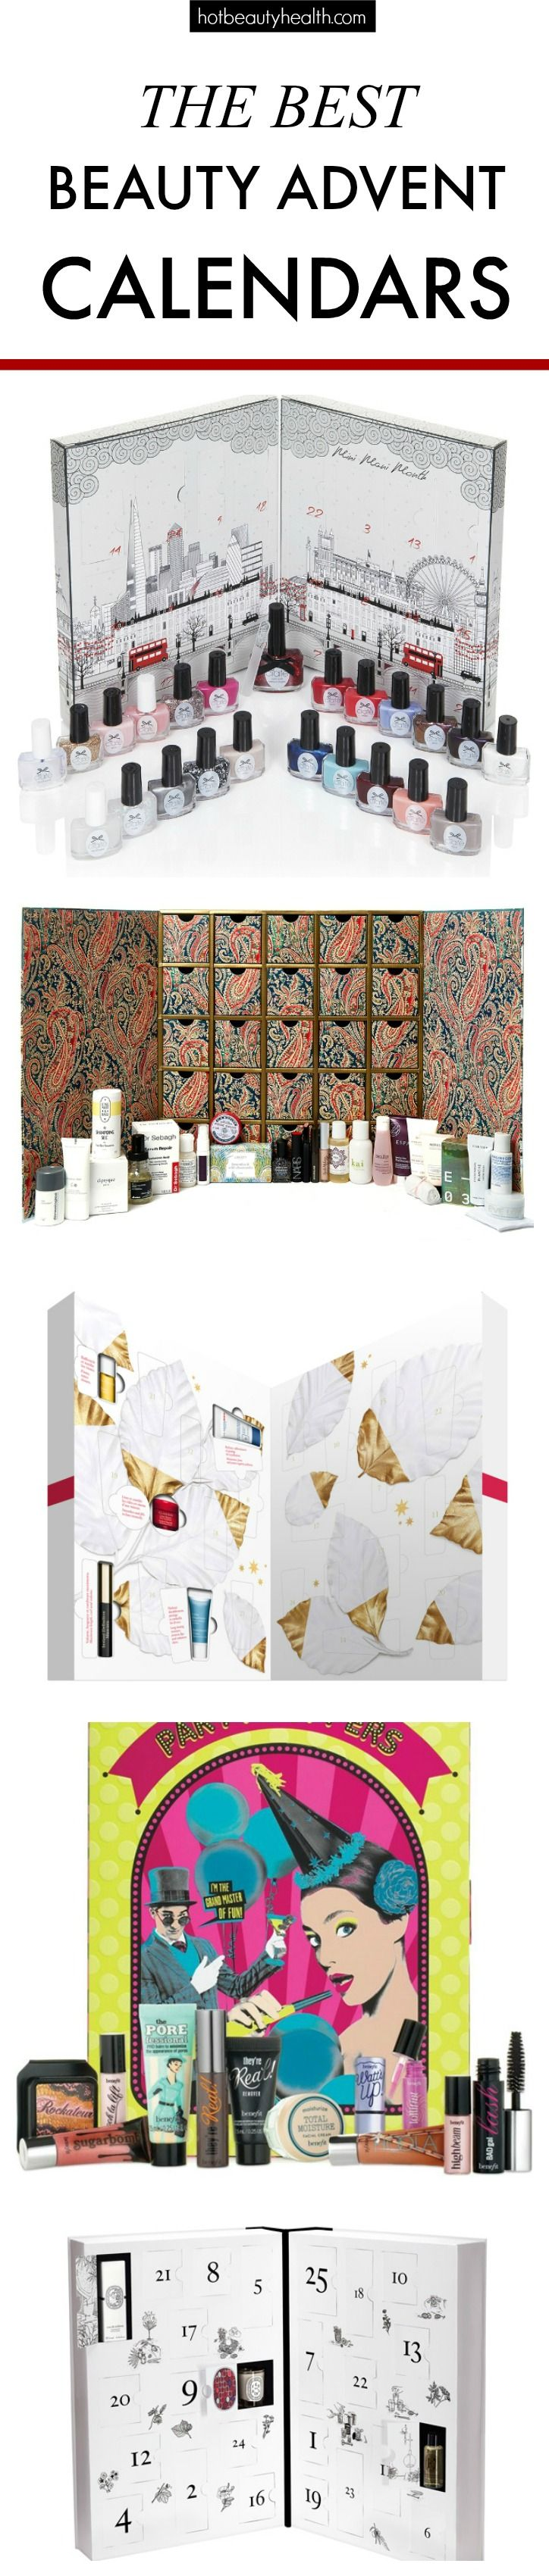 Looking for Christmas gift ideas for her? Check out this huge list of beauty advent calendars!